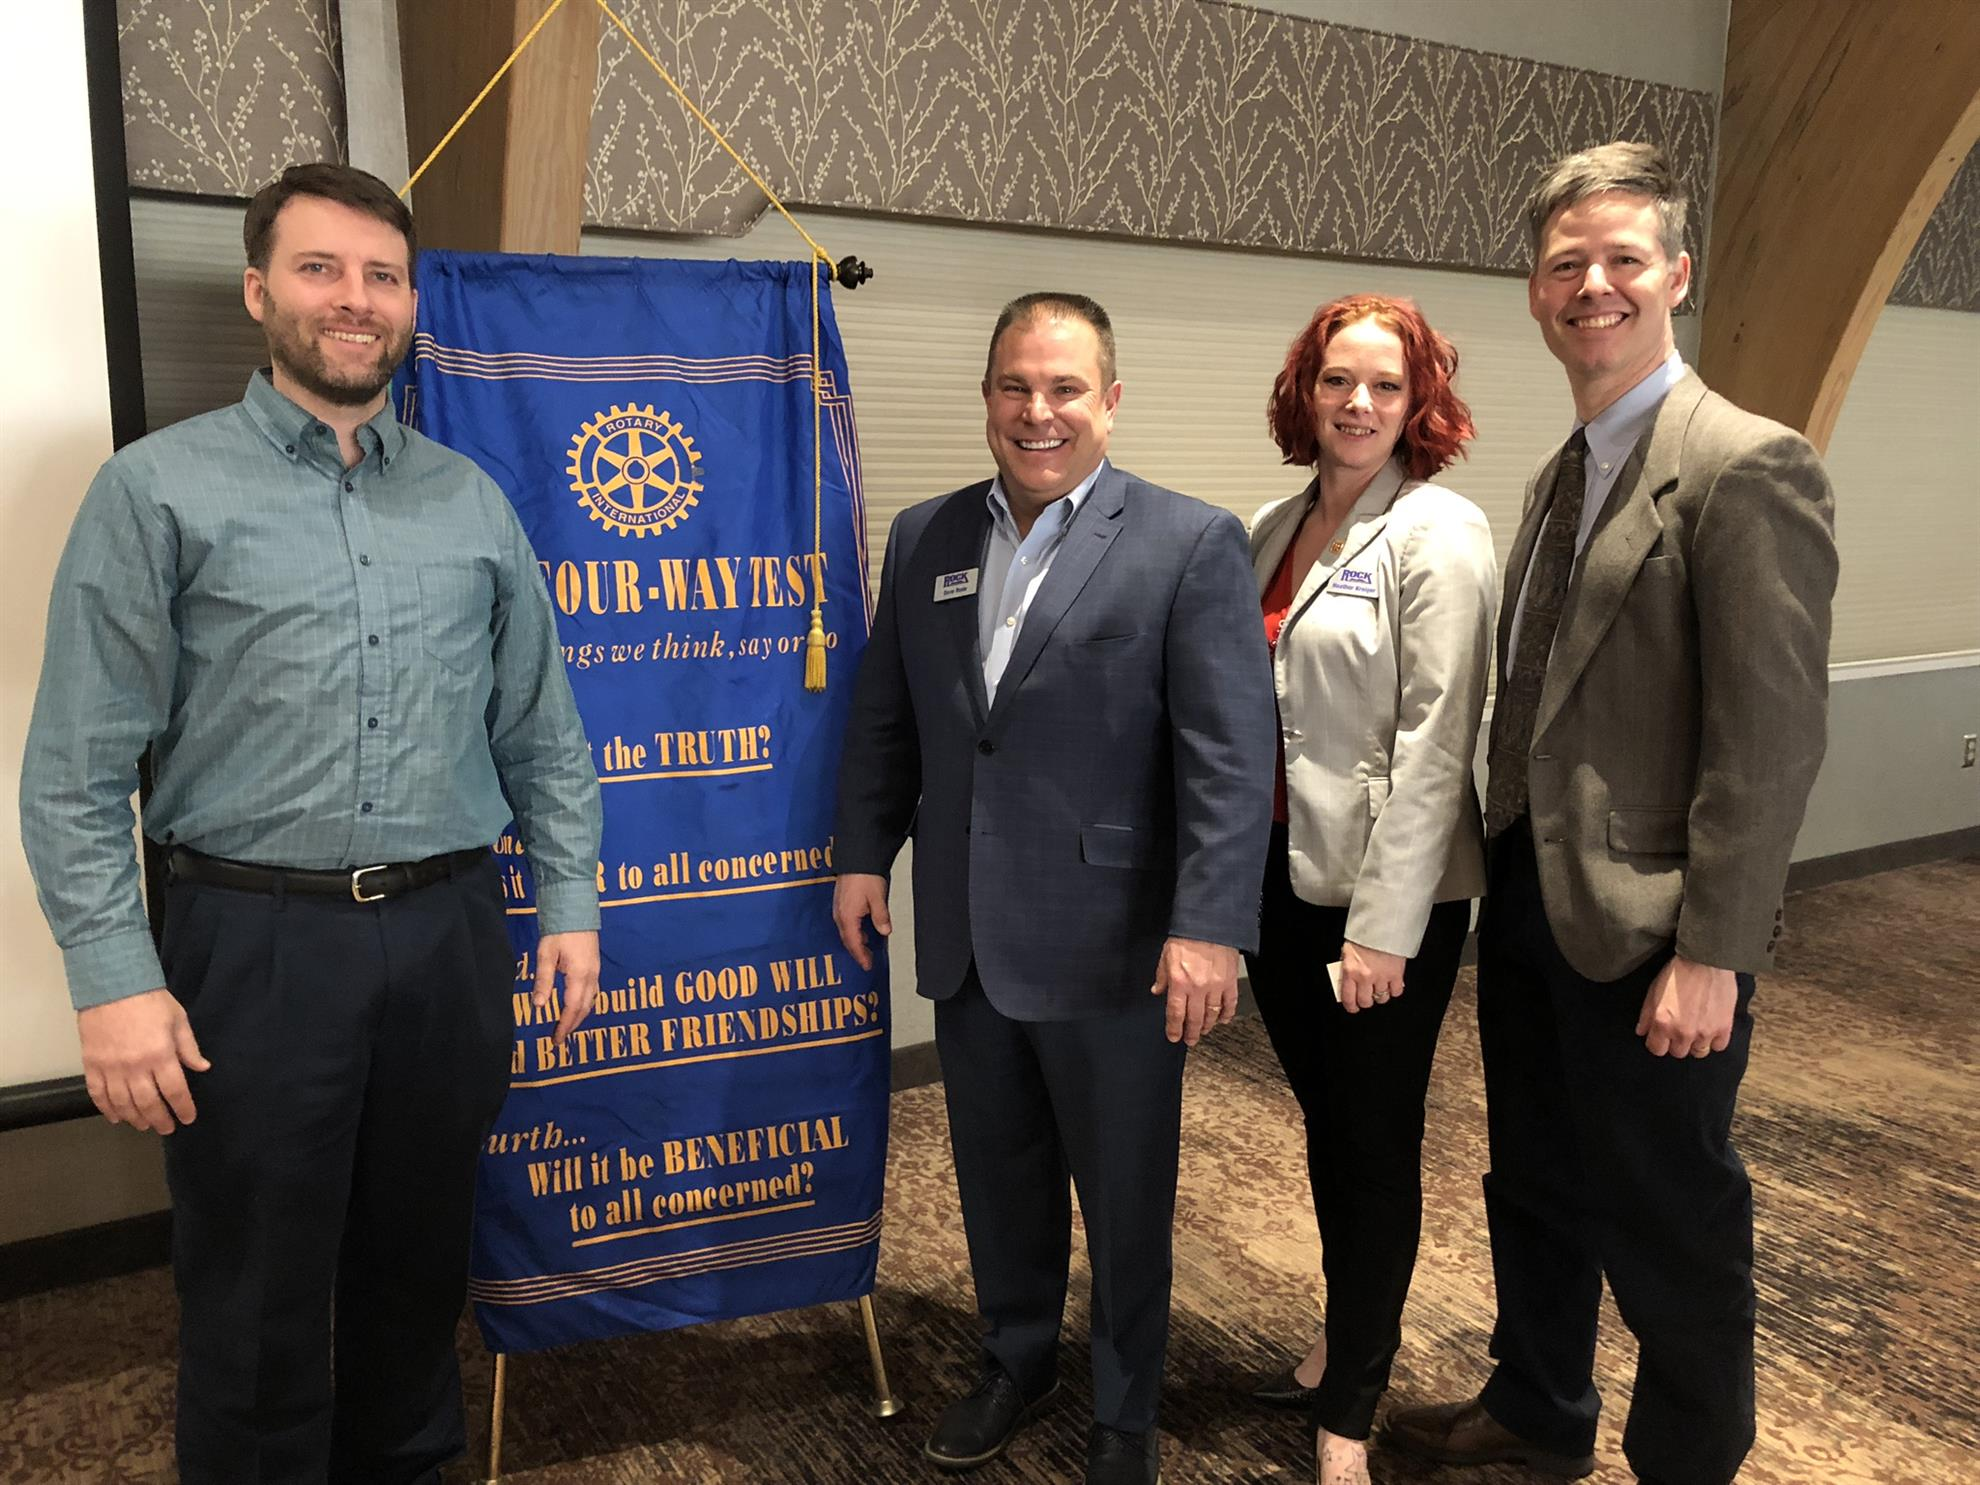 Stories | Rotary Club of York-East